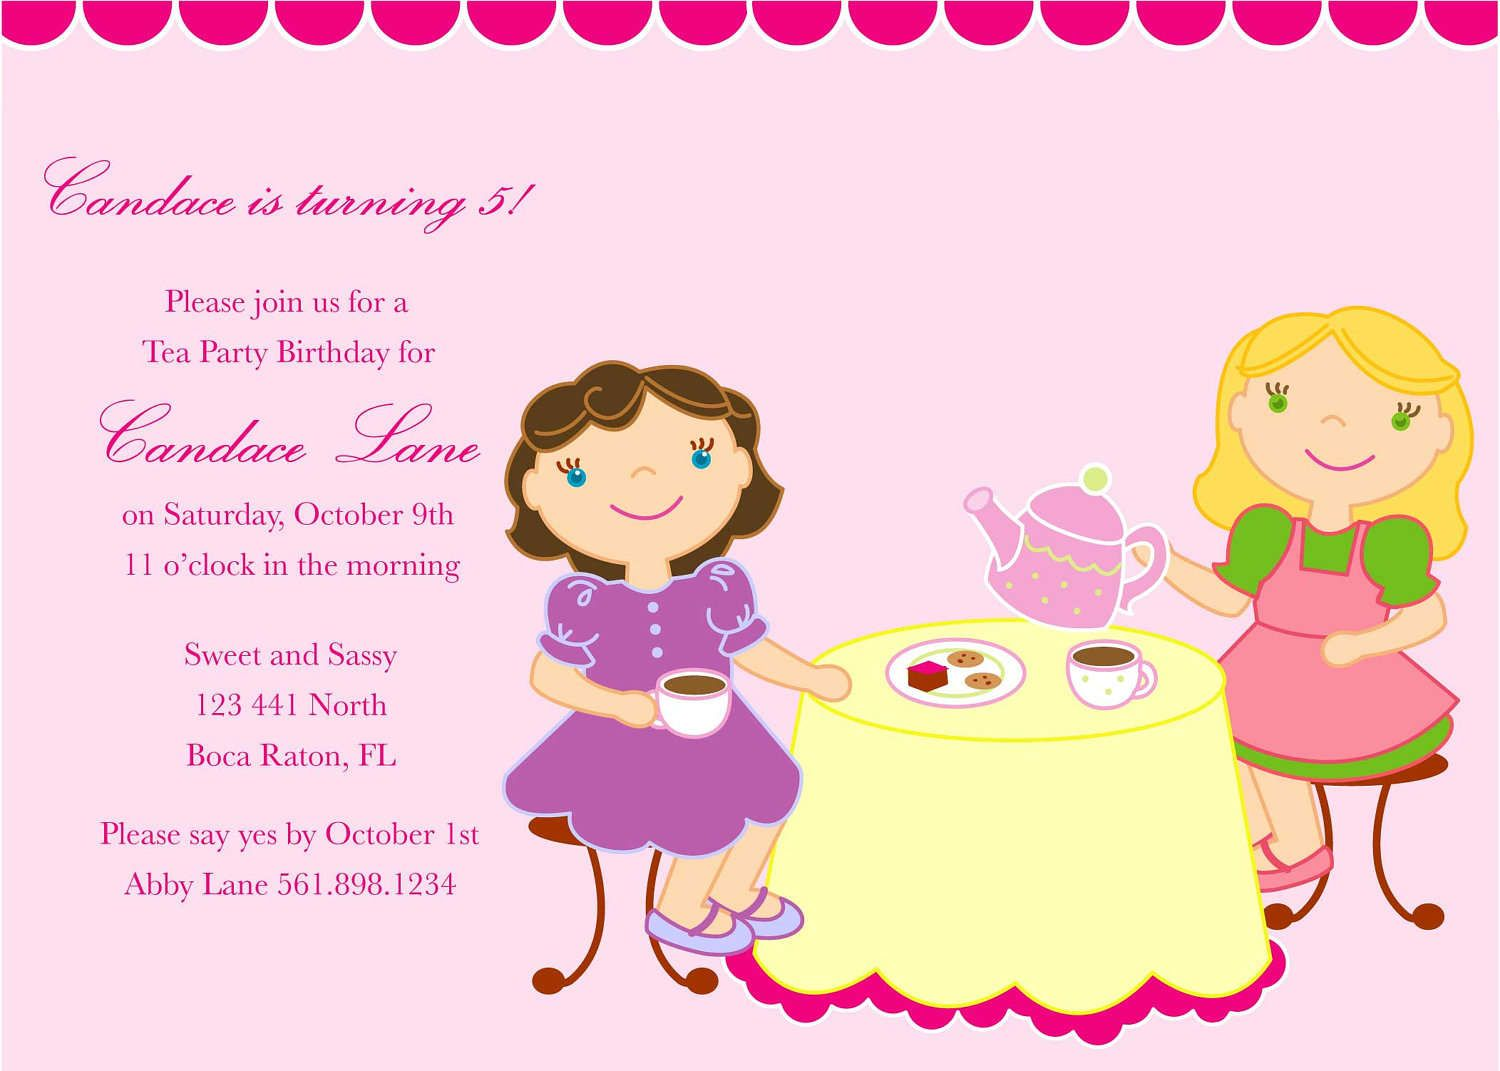 Kid Birthday Party Invitations My Birthday Pinterest – Kids Tea Party Invitations